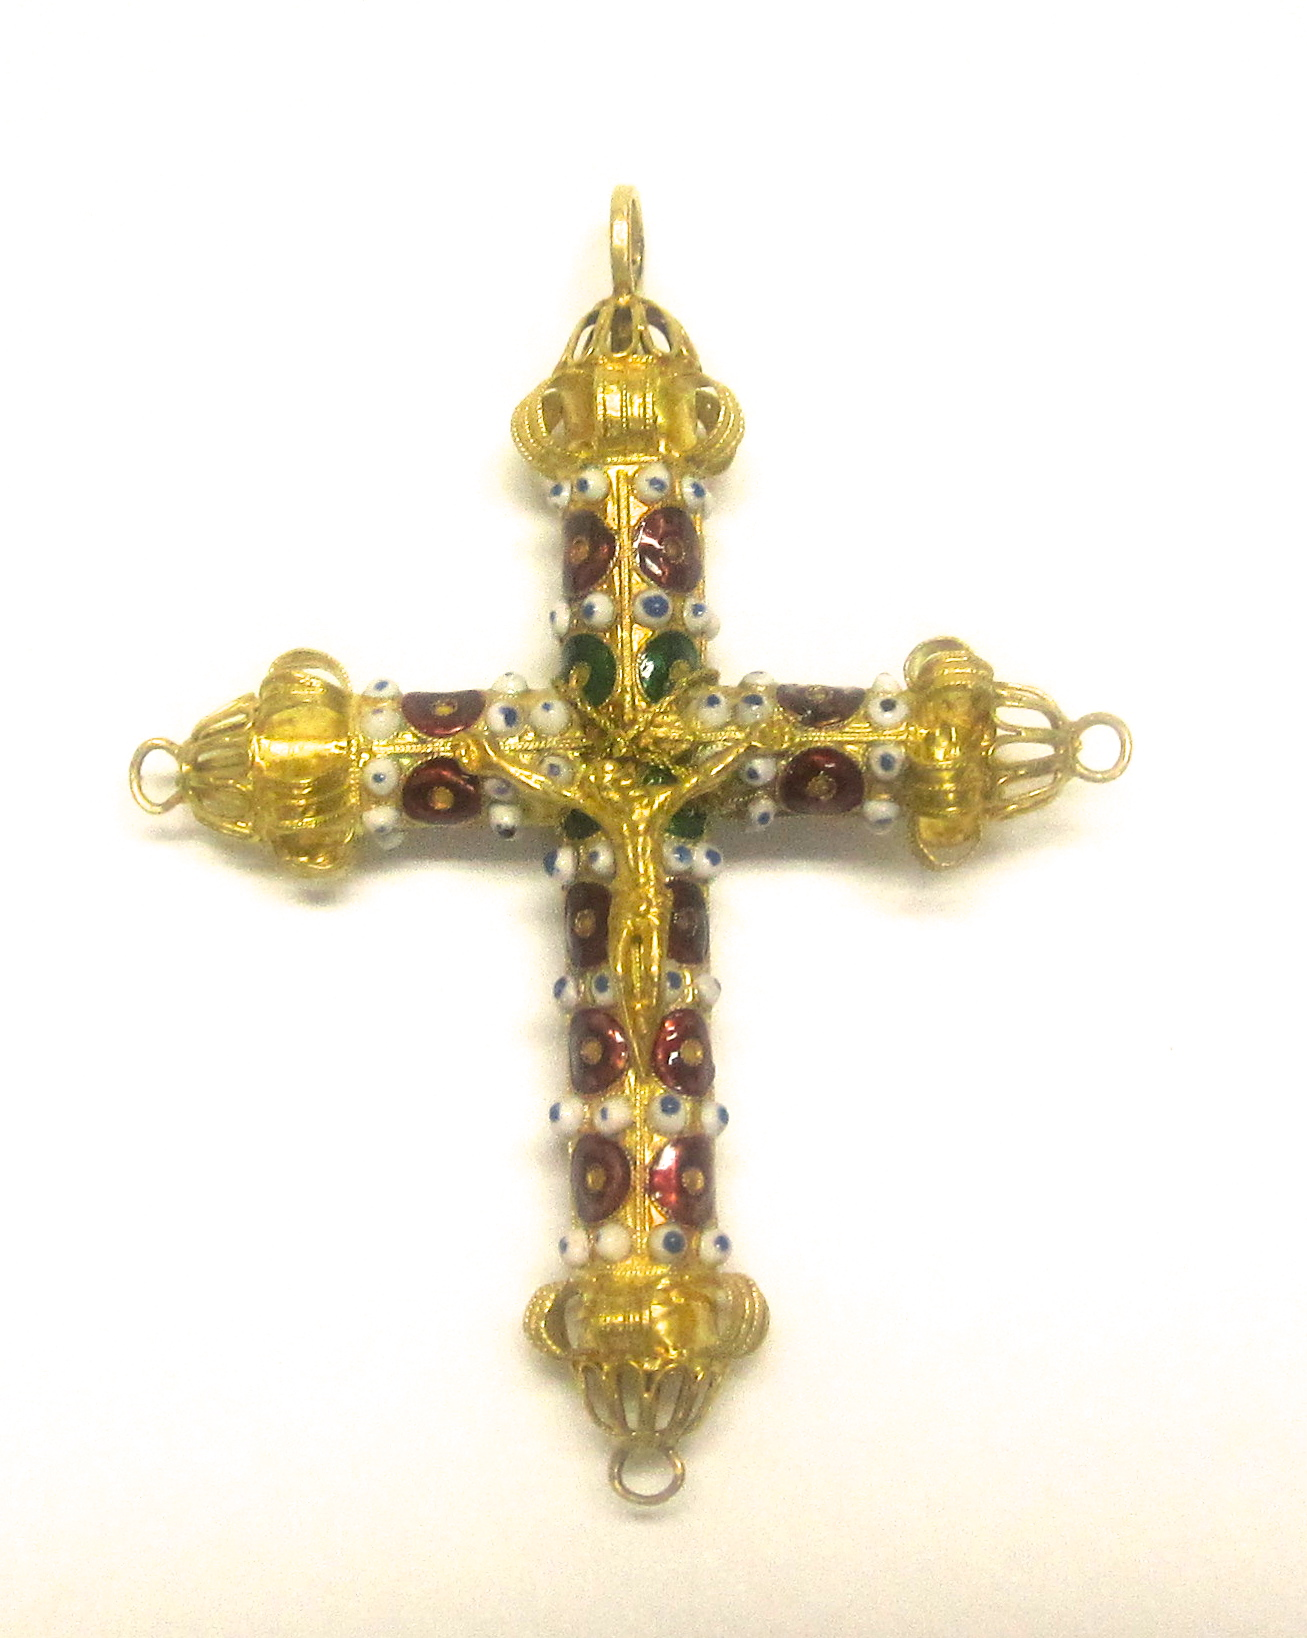 Renaissance Cross. Jewelry Repair and Restoration